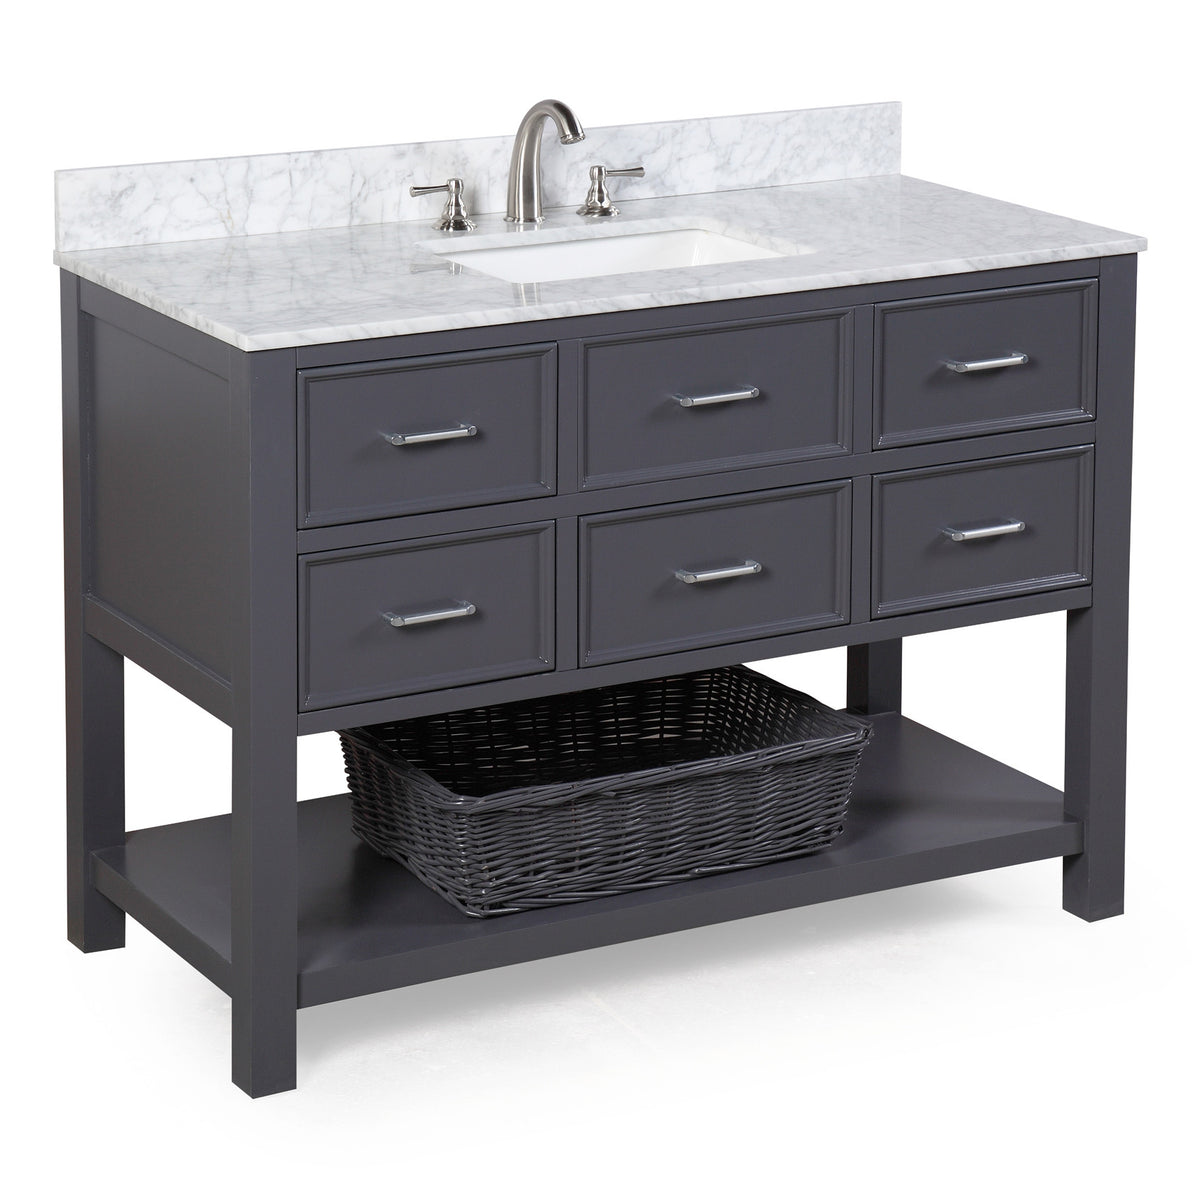 Discount Kitchen Cabinets Nh: New Hampshire 48-inch Vanity (Carrara/Charcoal Gray